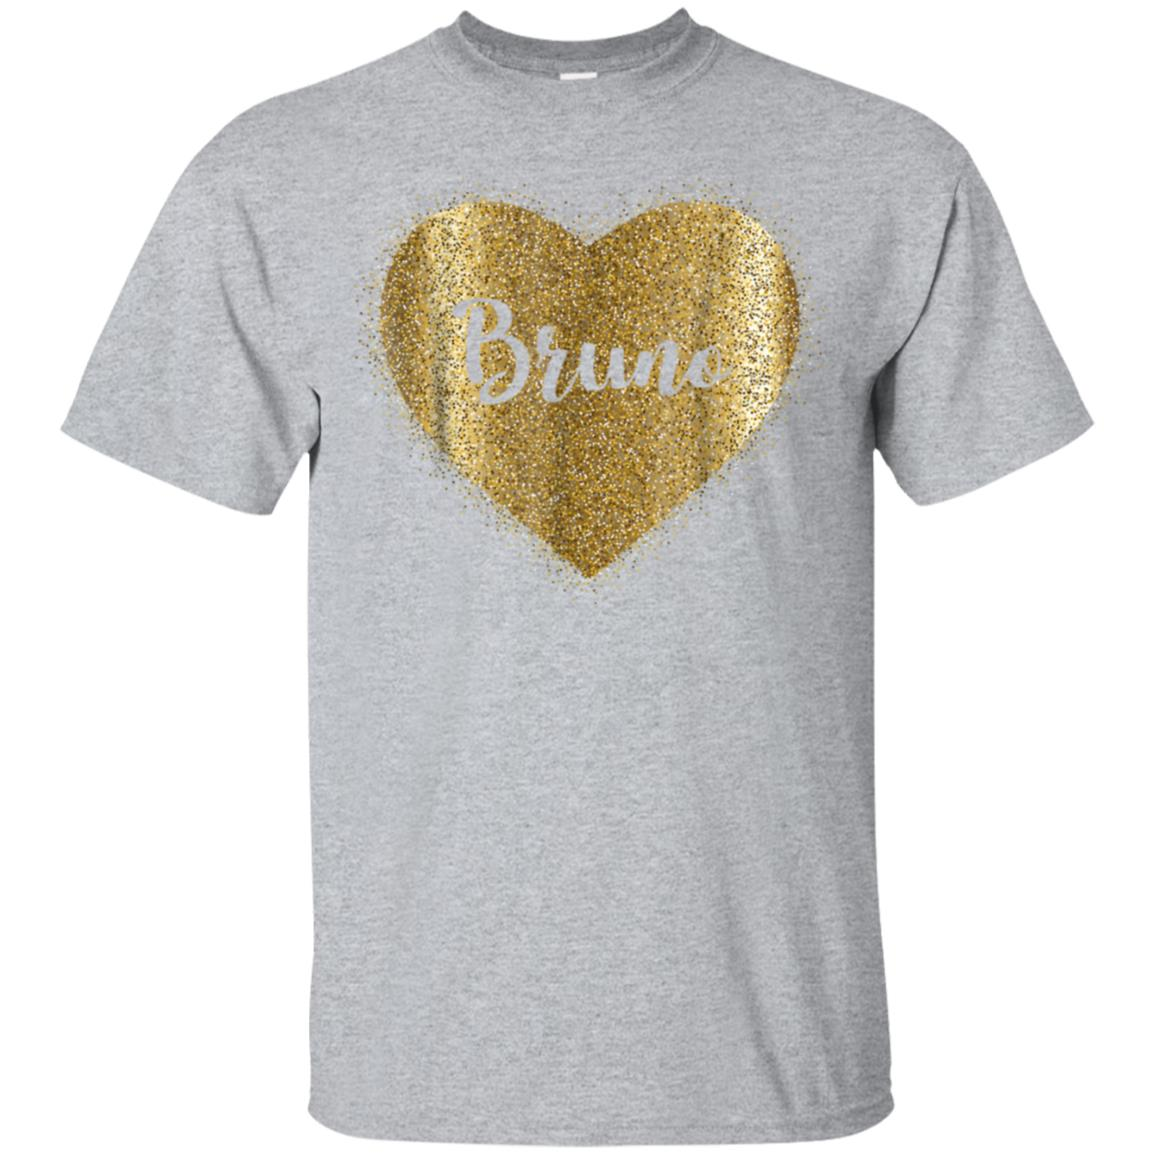 Love Heart Bruno Shirt Magic Lover Style 99promocode